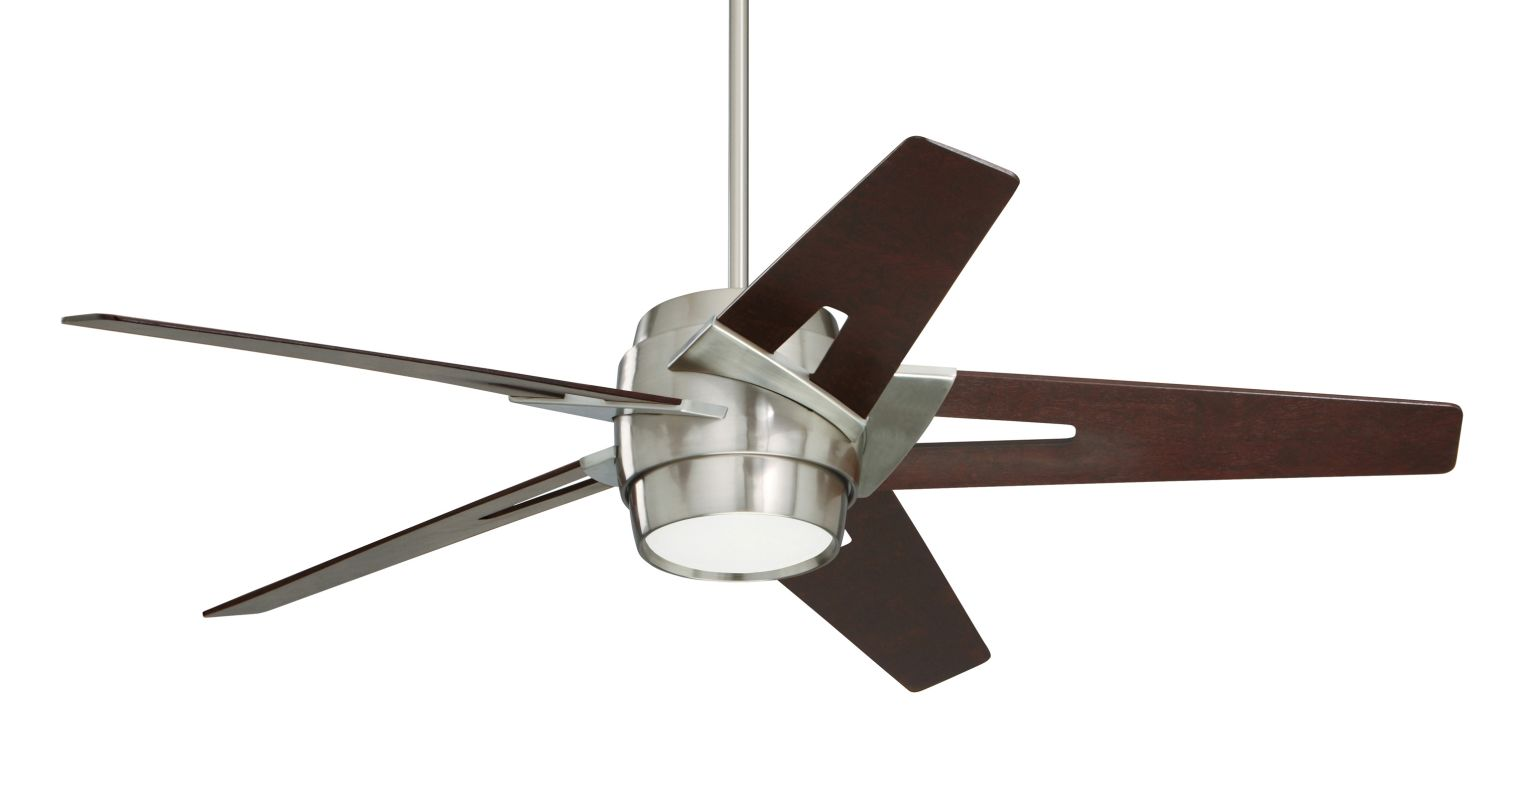 "Emerson CF550D Luxe Eco 54"" 5 Blade Ceiling Fan - Blades and Light Kit"